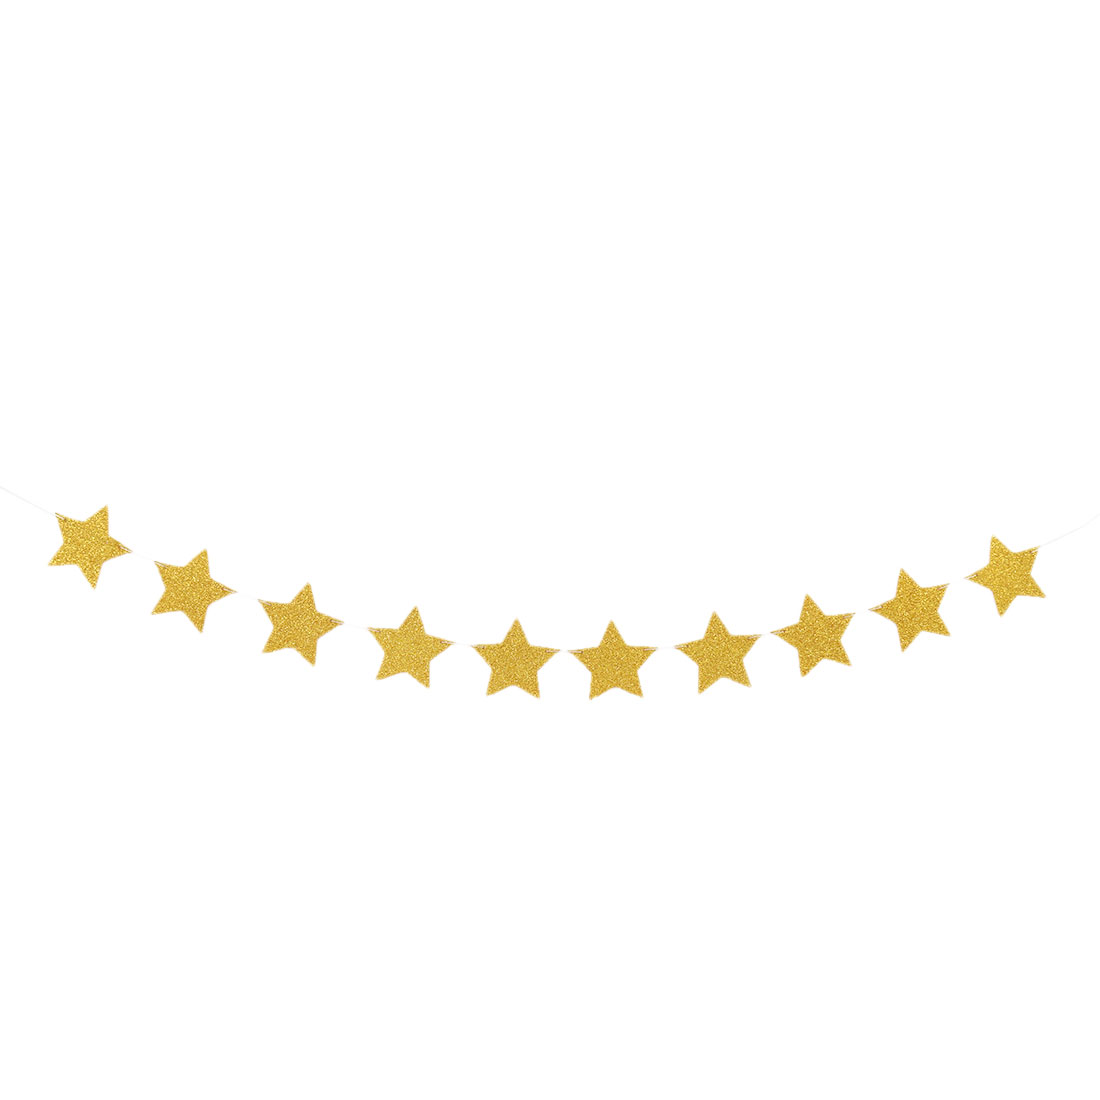 EVA Star Shape Glitter Party Decoration DIY Craft Photo Prop Bunting Banner Gold Tone